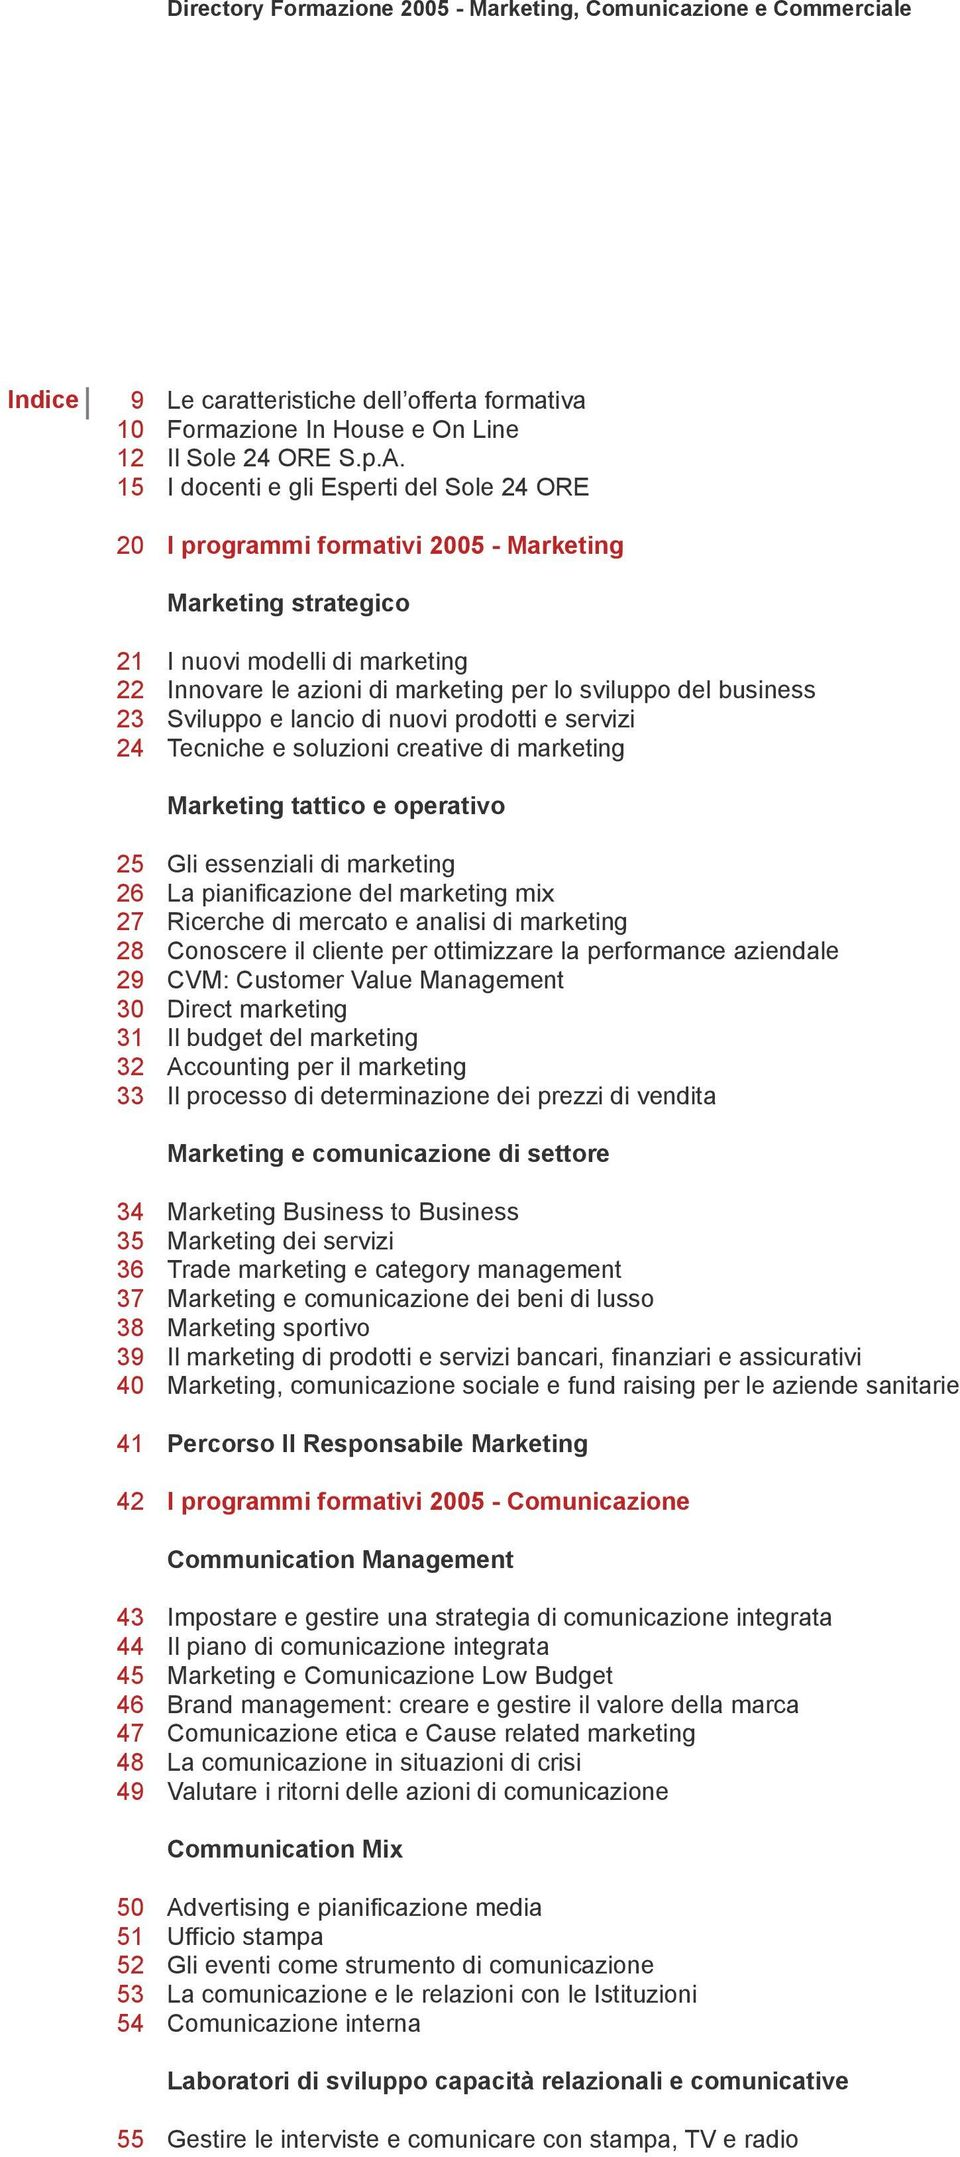 I docenti e gli Esperti del Sole 24 ORE I programmi formativi 2005 - Marketing Marketing strategico I nuovi modelli di marketing Innovare le azioni di marketing per lo sviluppo del business Sviluppo